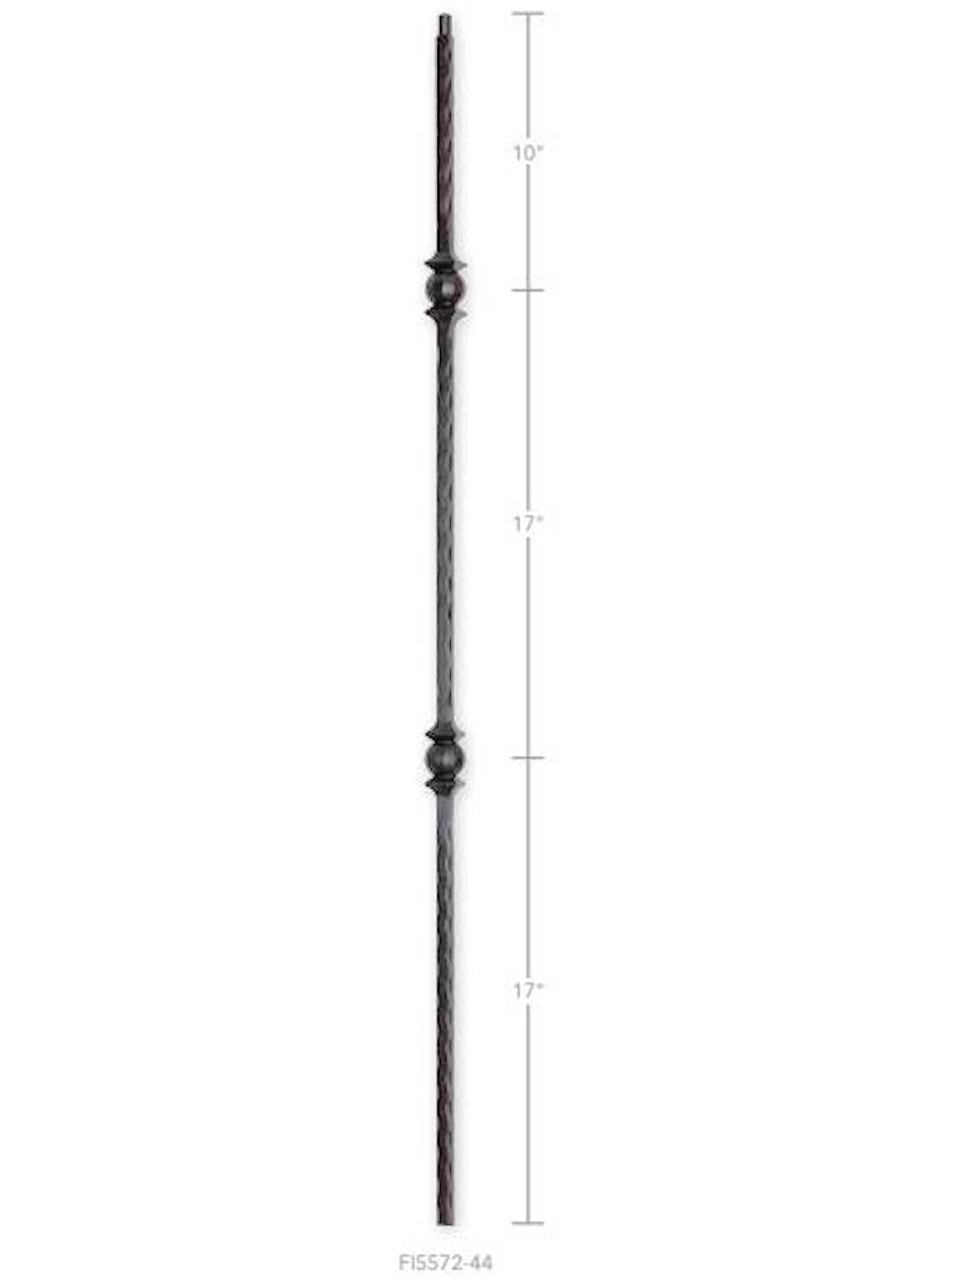 FI5572-44 Hammered Double Ball Iron Baluster